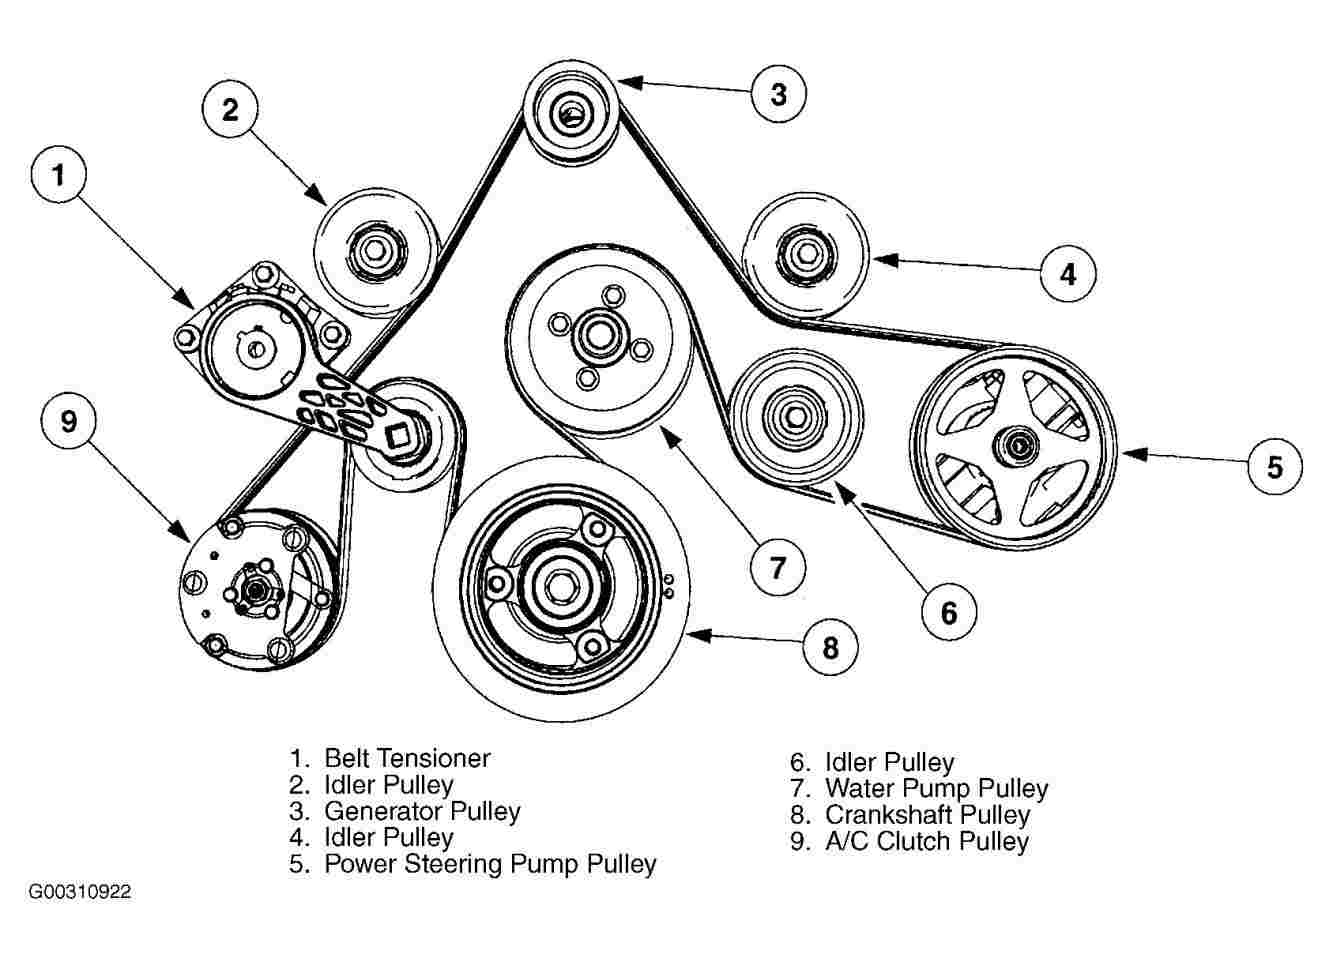 hight resolution of ford v8 engine cutaway diagram wiring diagram gp ford v8 engine diagram